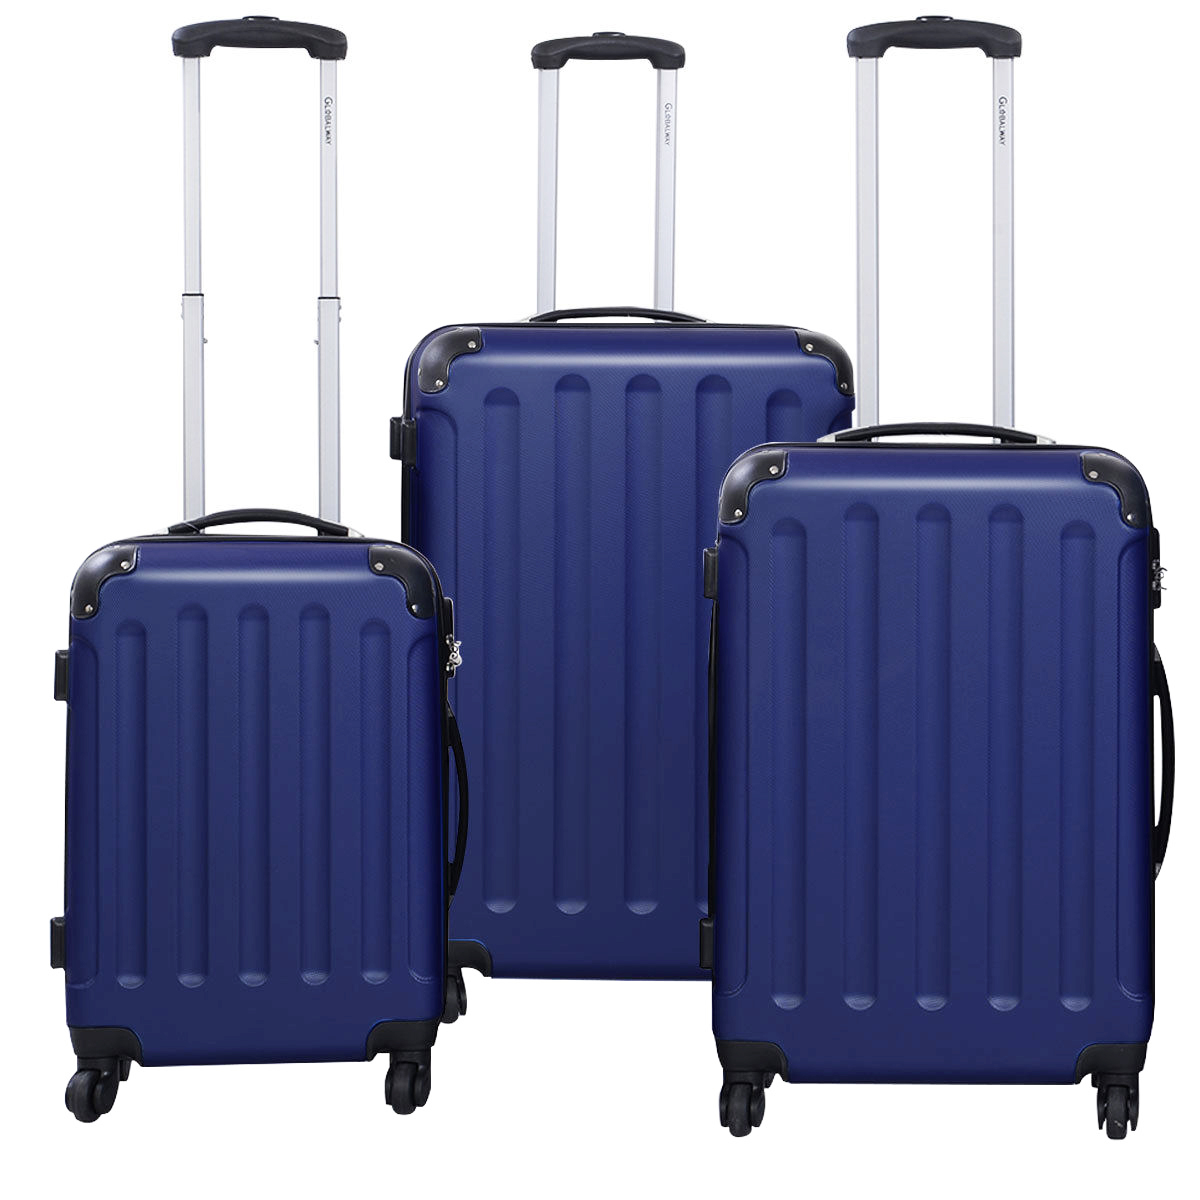 Globalway Luggage ABS+PC Trolley Suitcase Travel Set, Blue - 3 Pcs